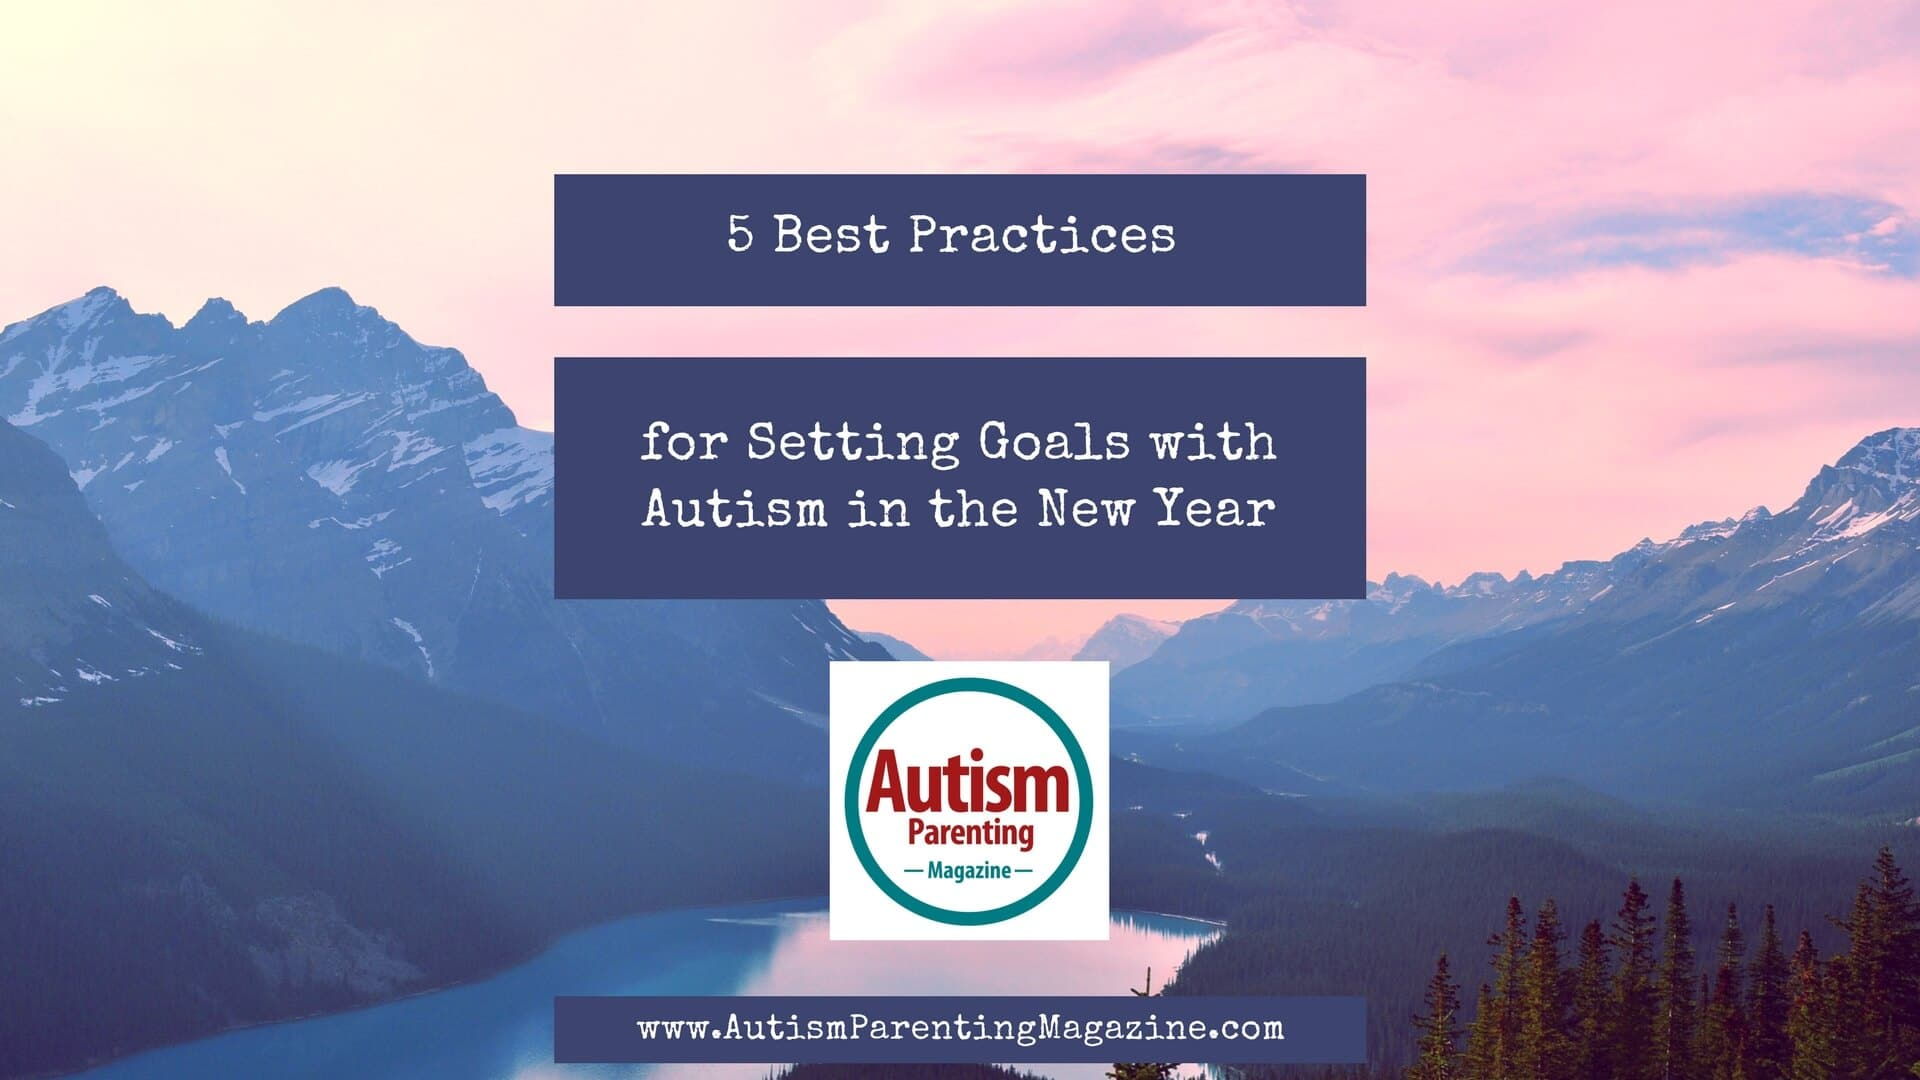 5 Best Practices for Setting Goals with Autism in the New Year http://www.autismparentingmagazine.com/best-practices-with-autism-in-new-year